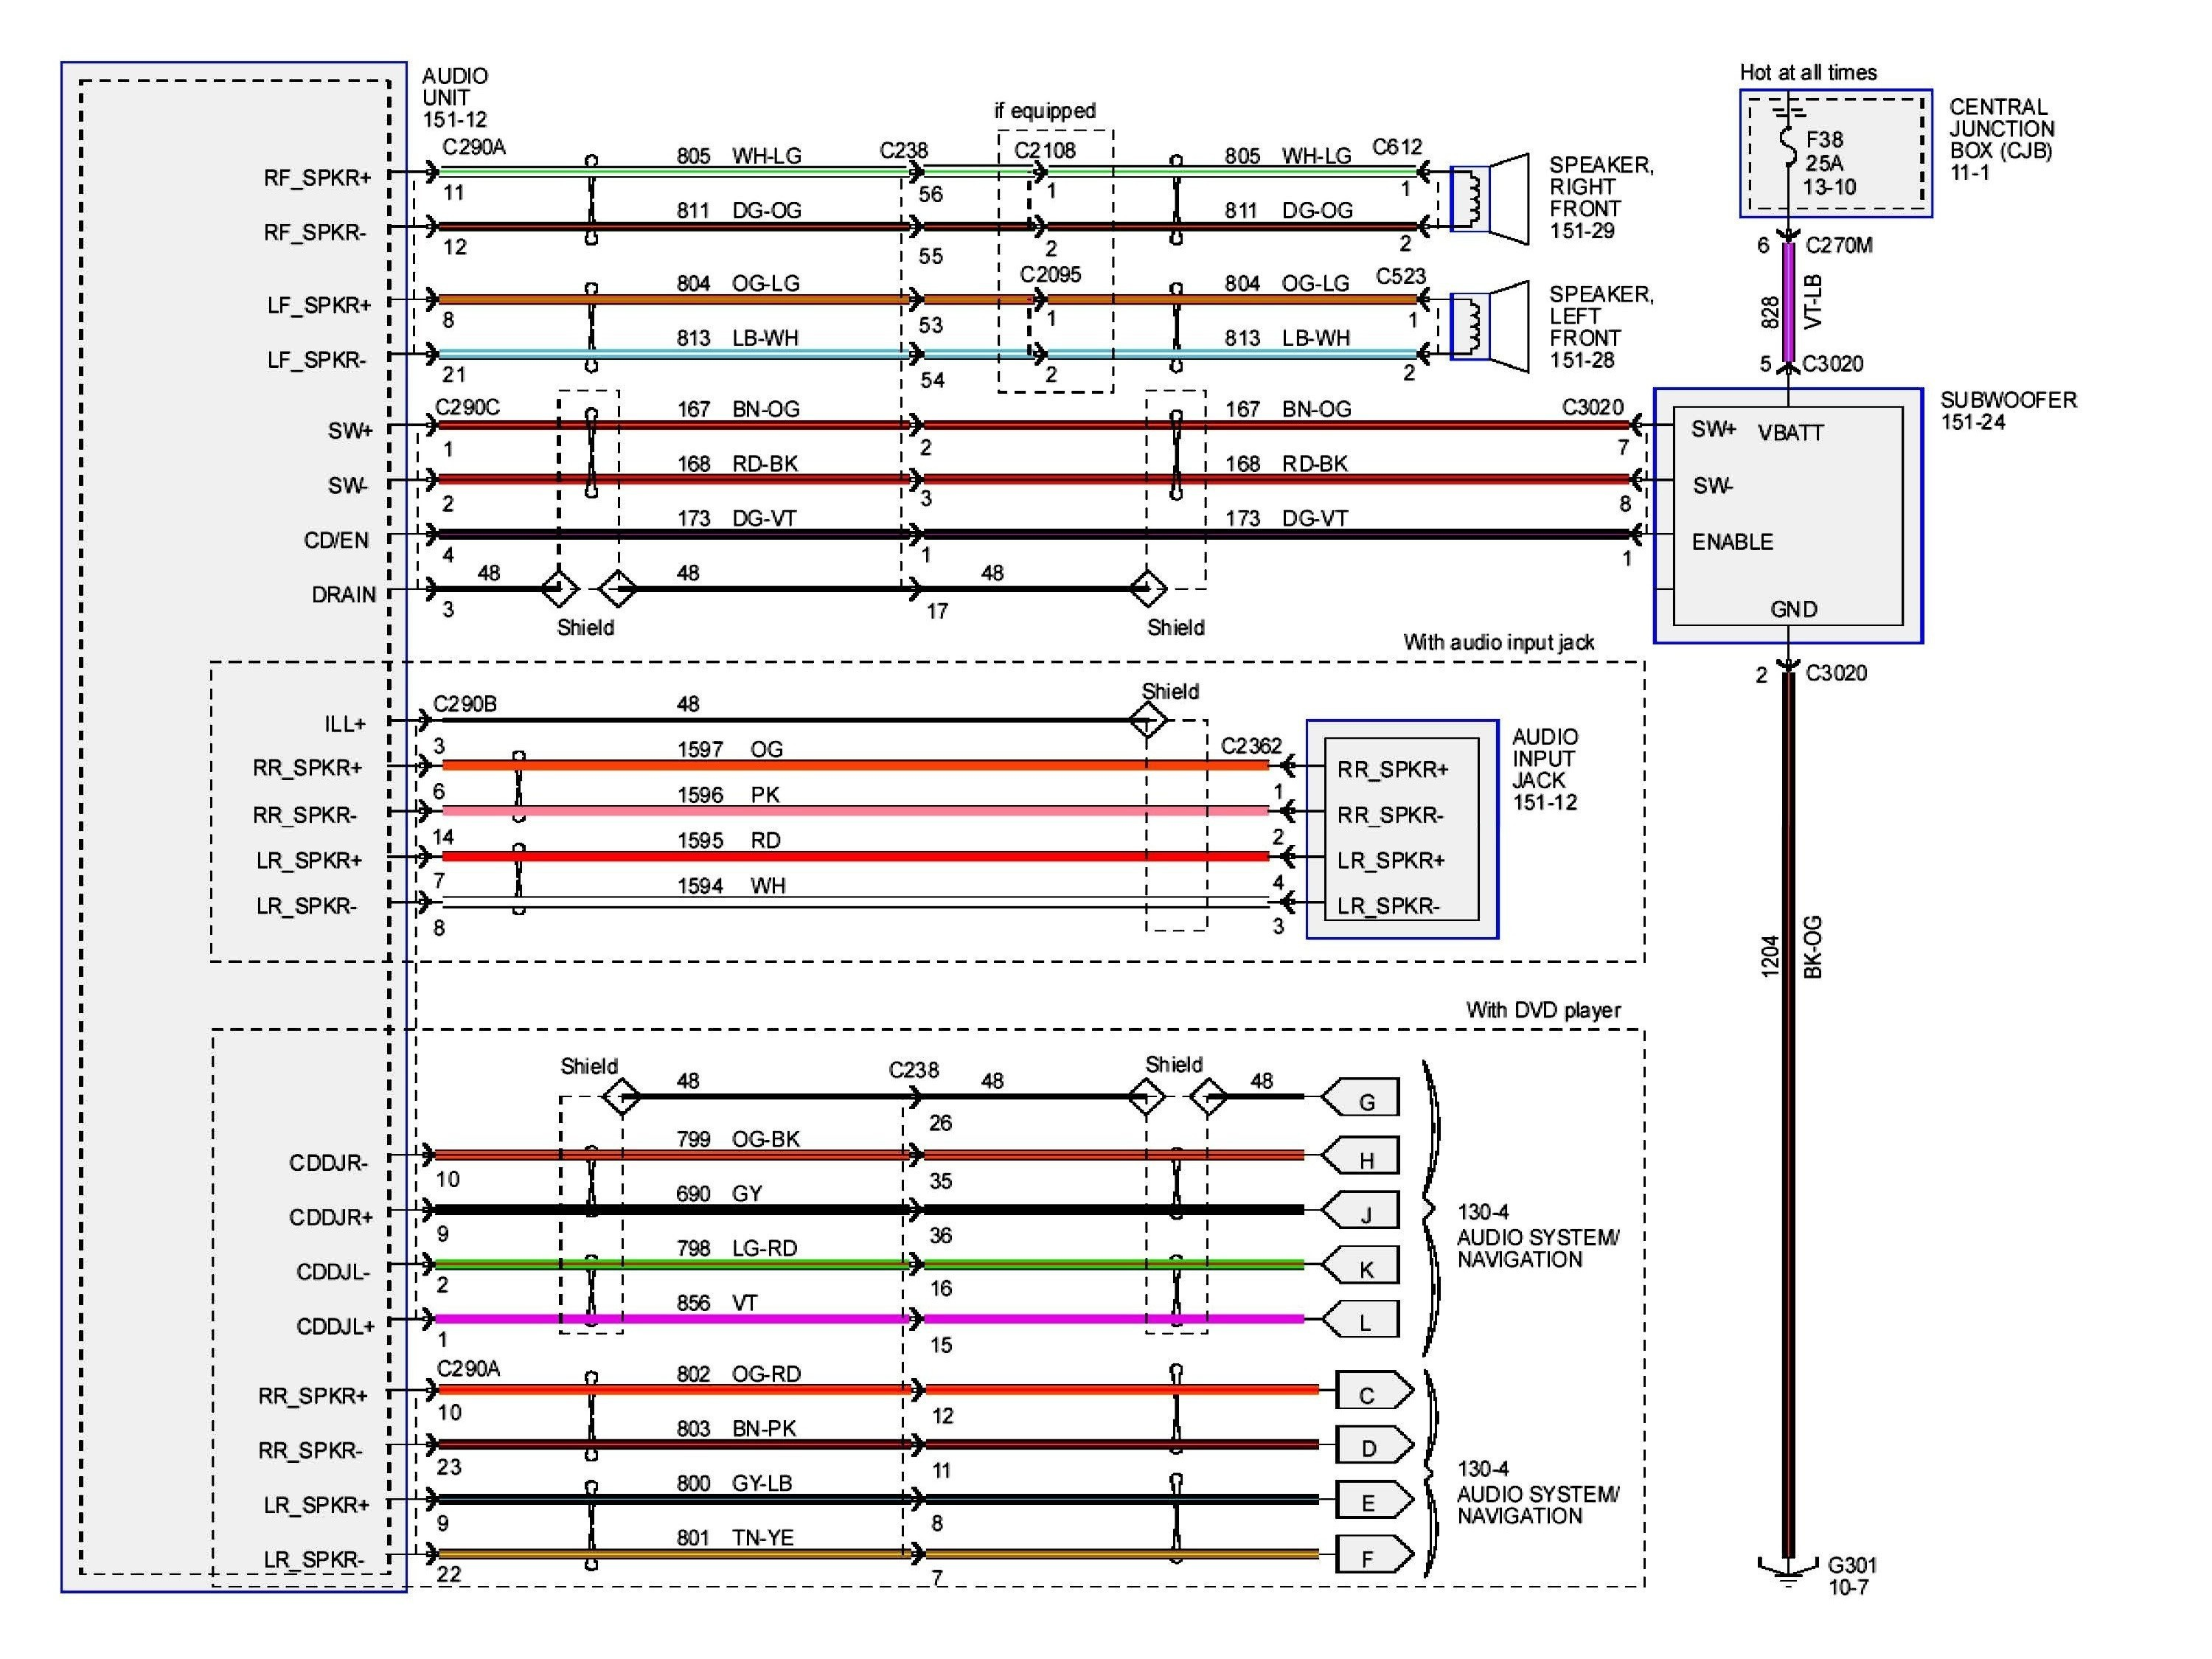 2013 Chevy Malibu Radio Wiring Diagram from static-cdn.imageservice.cloud